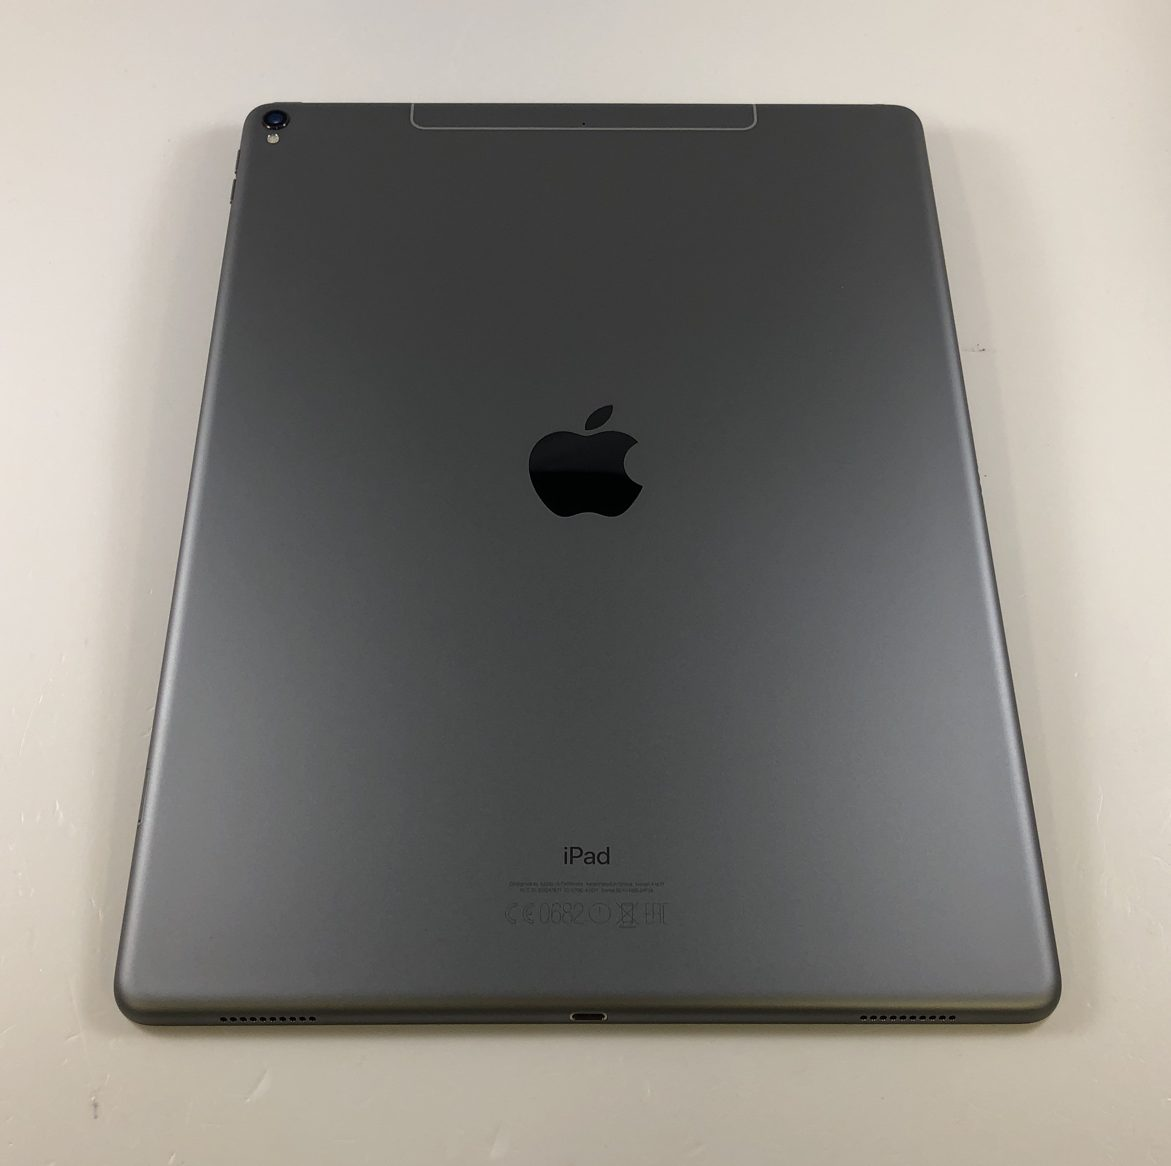 "iPad Pro 12.9"" Wi-Fi + Cellular (2nd Gen) 256GB, 256GB, Space Gray, image 2"